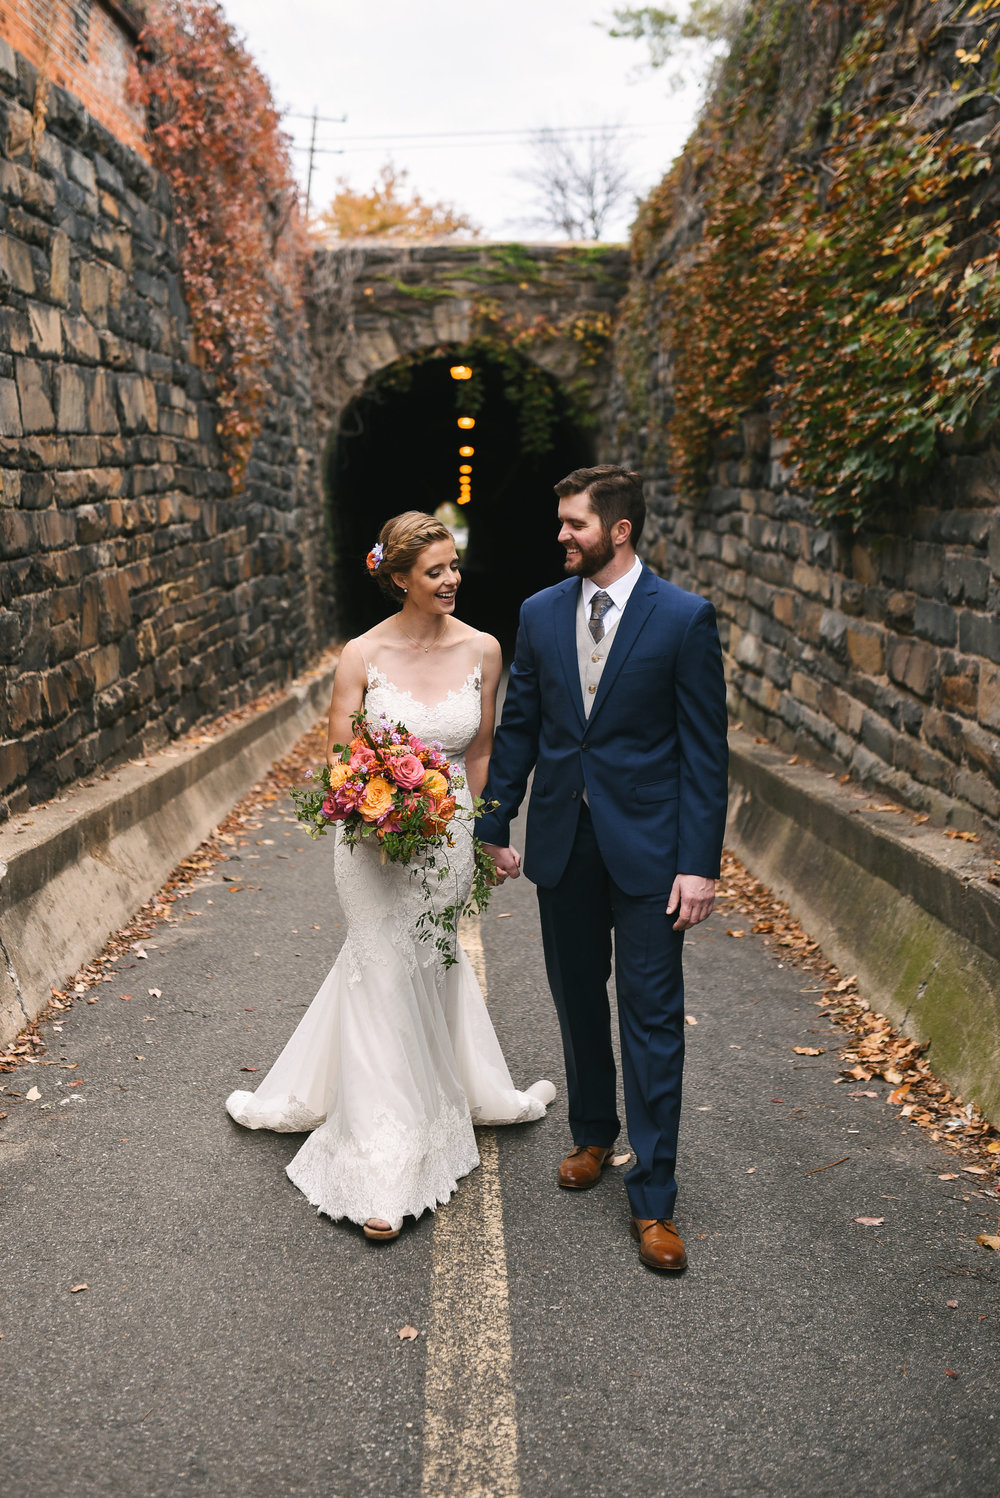 Alexandria, Virginia, Fall Wedding, Historic Wedding, Old Town, DC, Wilkes Street Tunnel, Romantic, Lian Carlo Wedding Dress, Secluded Moments, The Enchanted Florist Bouquet, DC Wedding Photographer